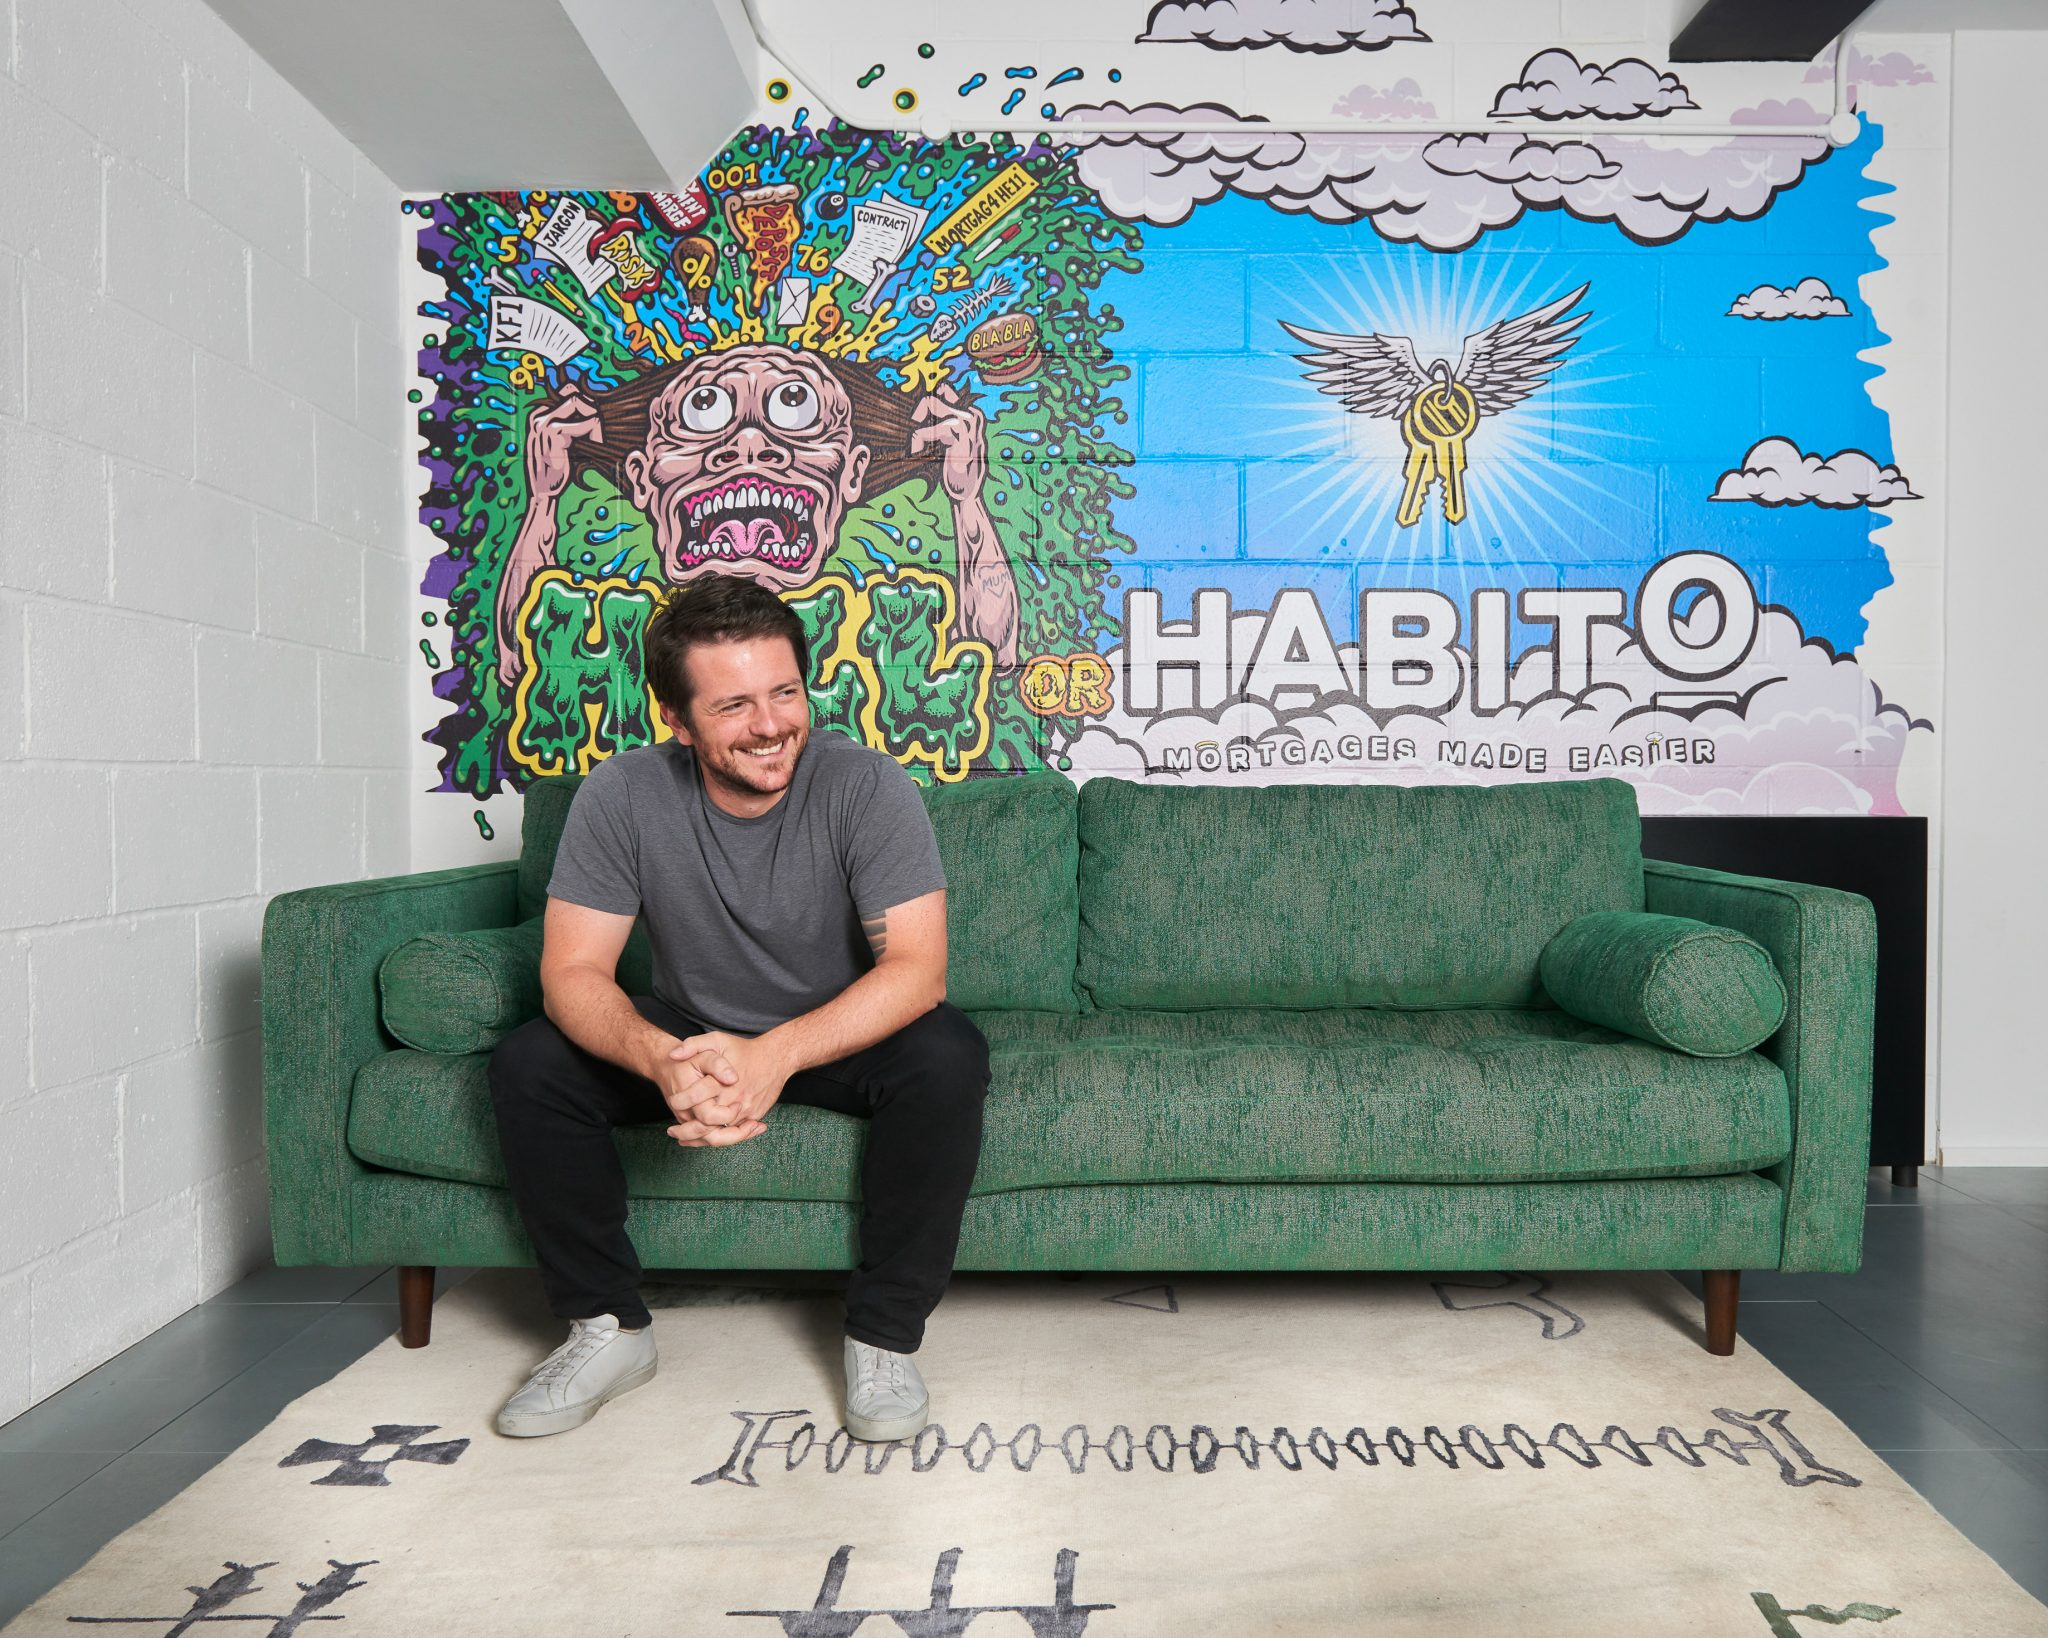 Habito CEO Daniel Hegarty